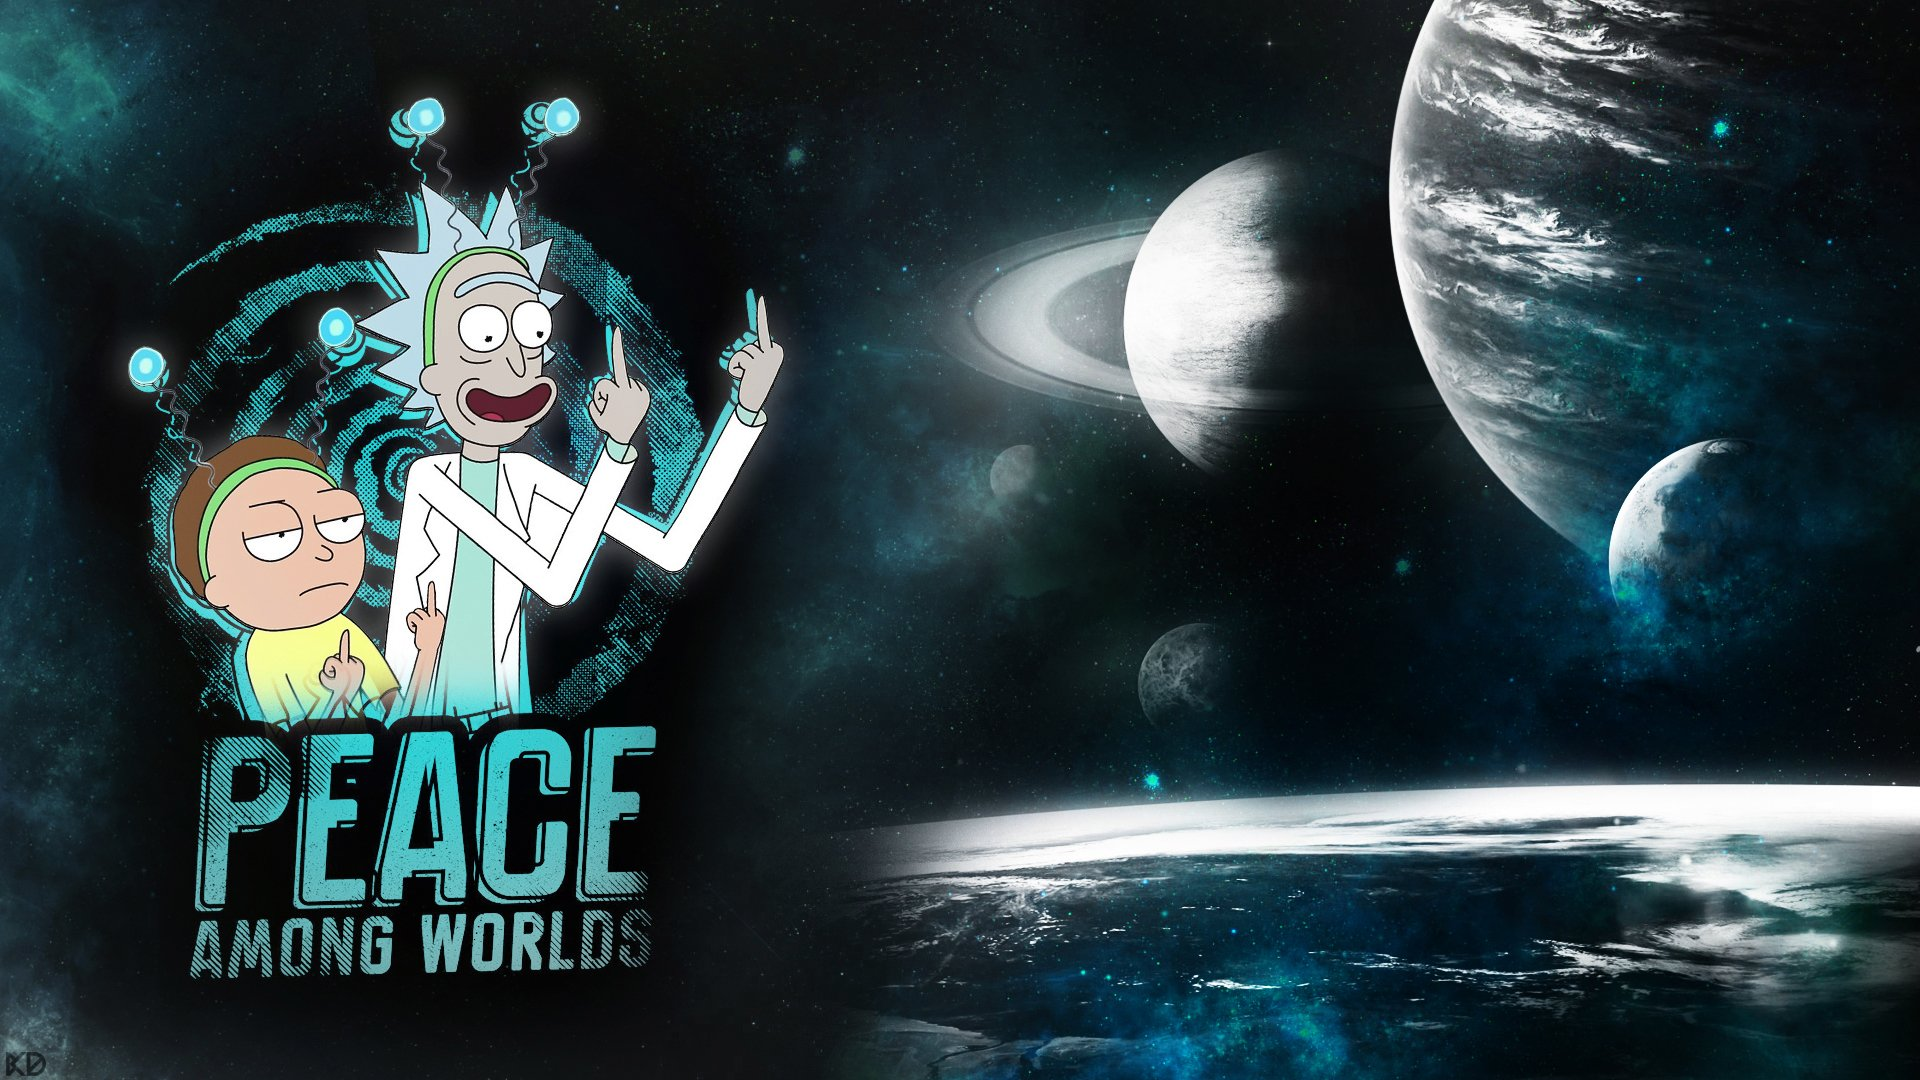 246 Rick and Morty HD Wallpapers   Background Images   Wallpaper Abyss HD Wallpaper   Background Image ID 807226